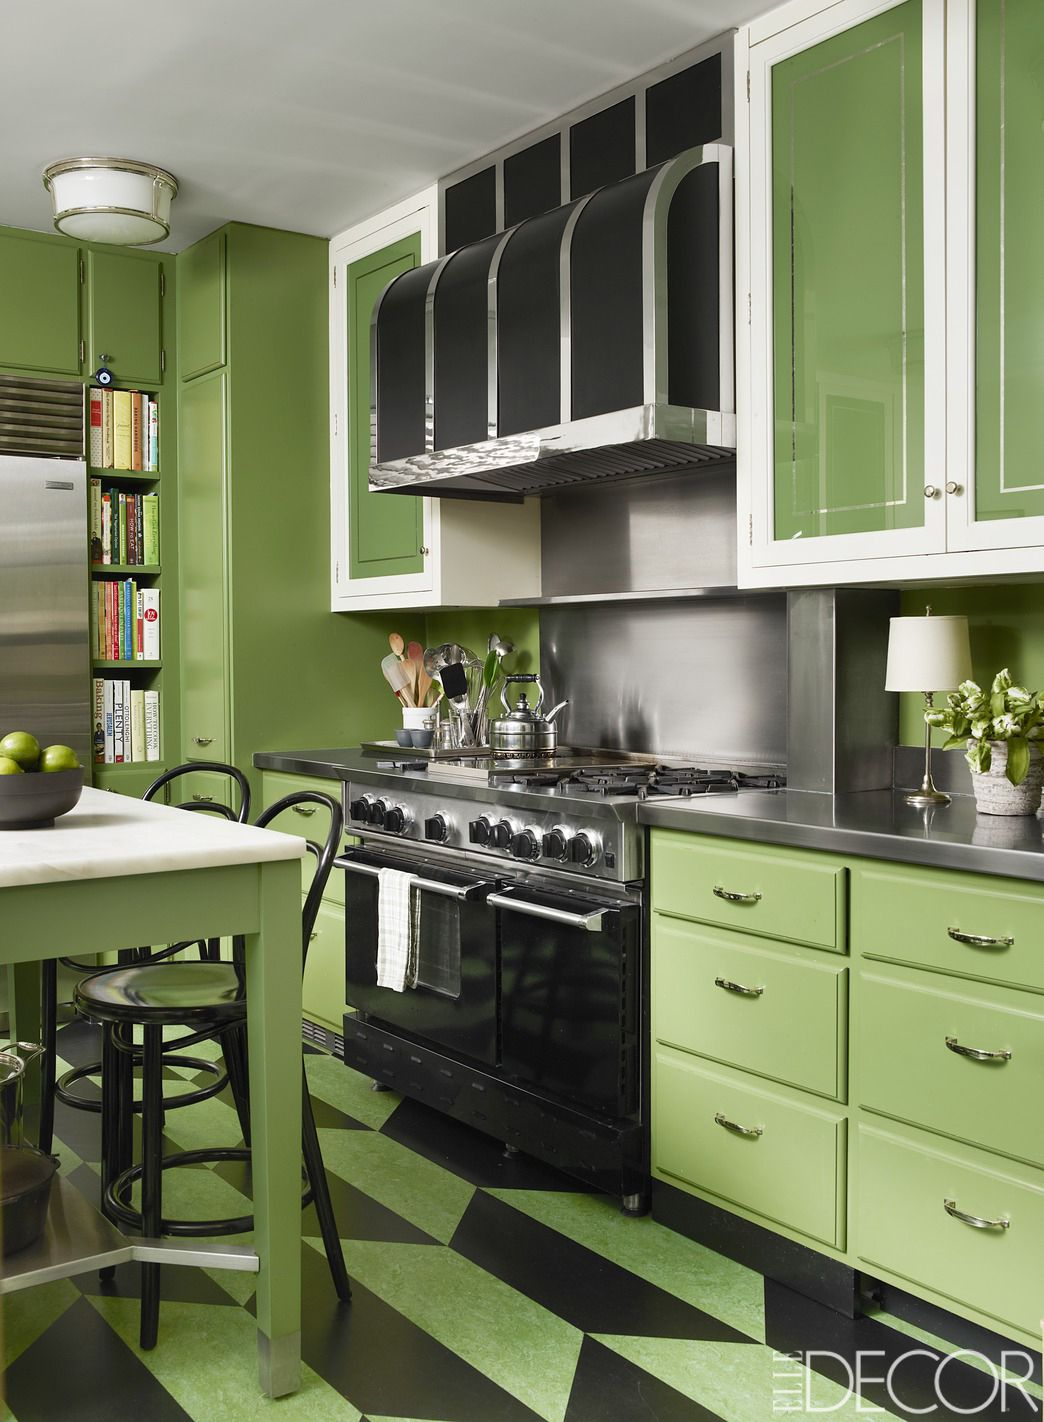 Ideas For Kitchen Design 50 Small Kitchen Design Ideas  Decorating Tiny Kitchens